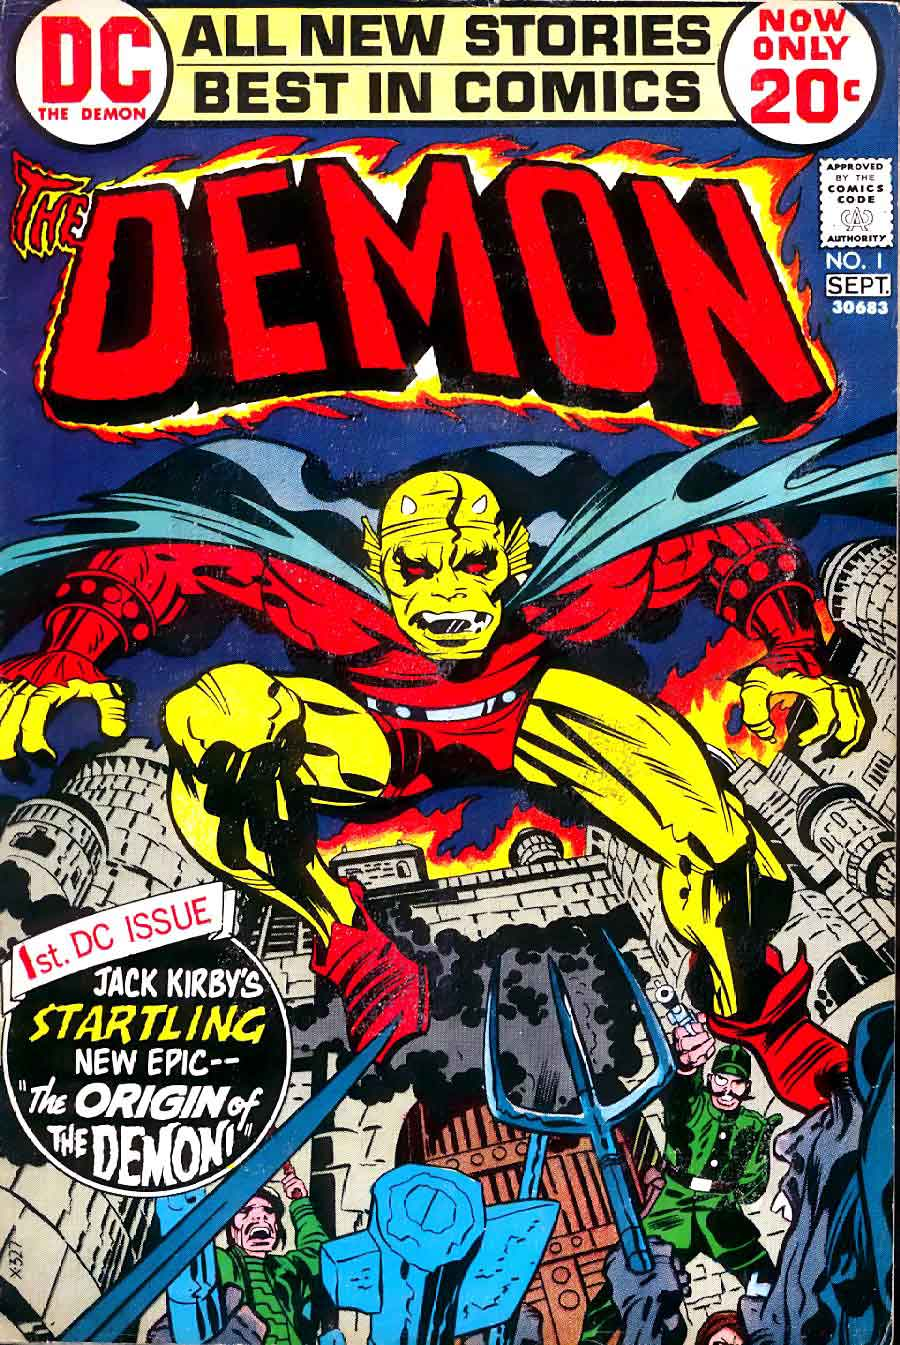 Demon v1 #1 dc bronze age comic book cover art by Jack Kirby